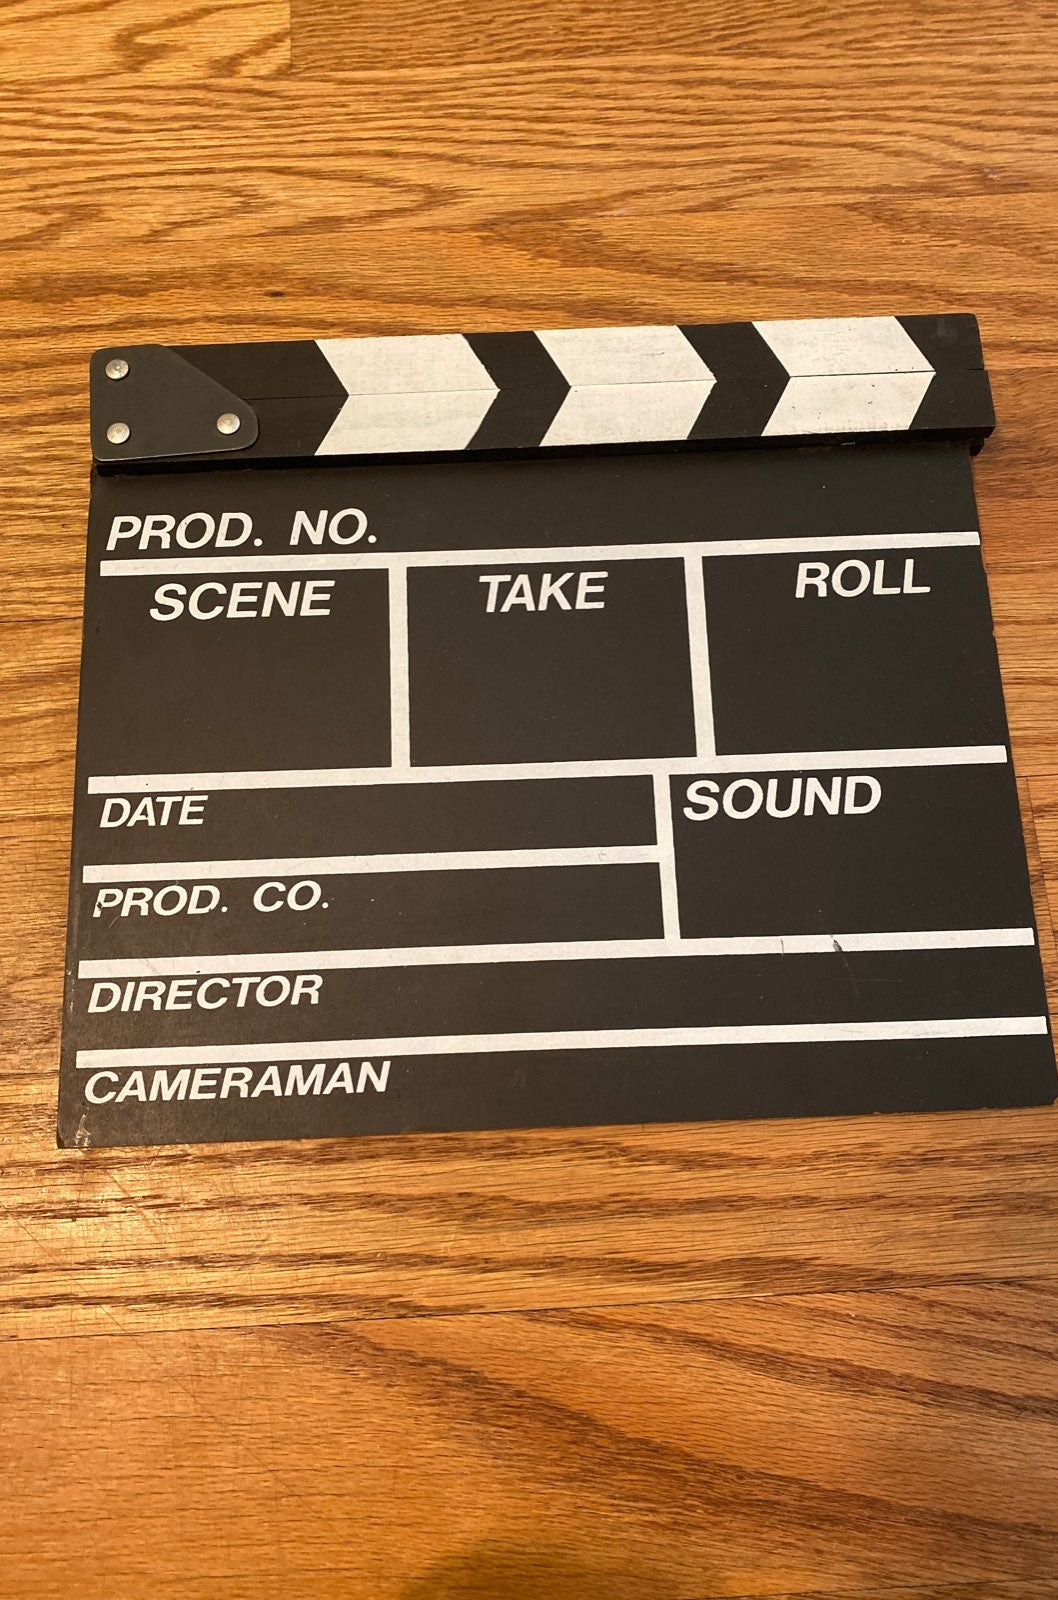 Authentic wooden Clapperboard